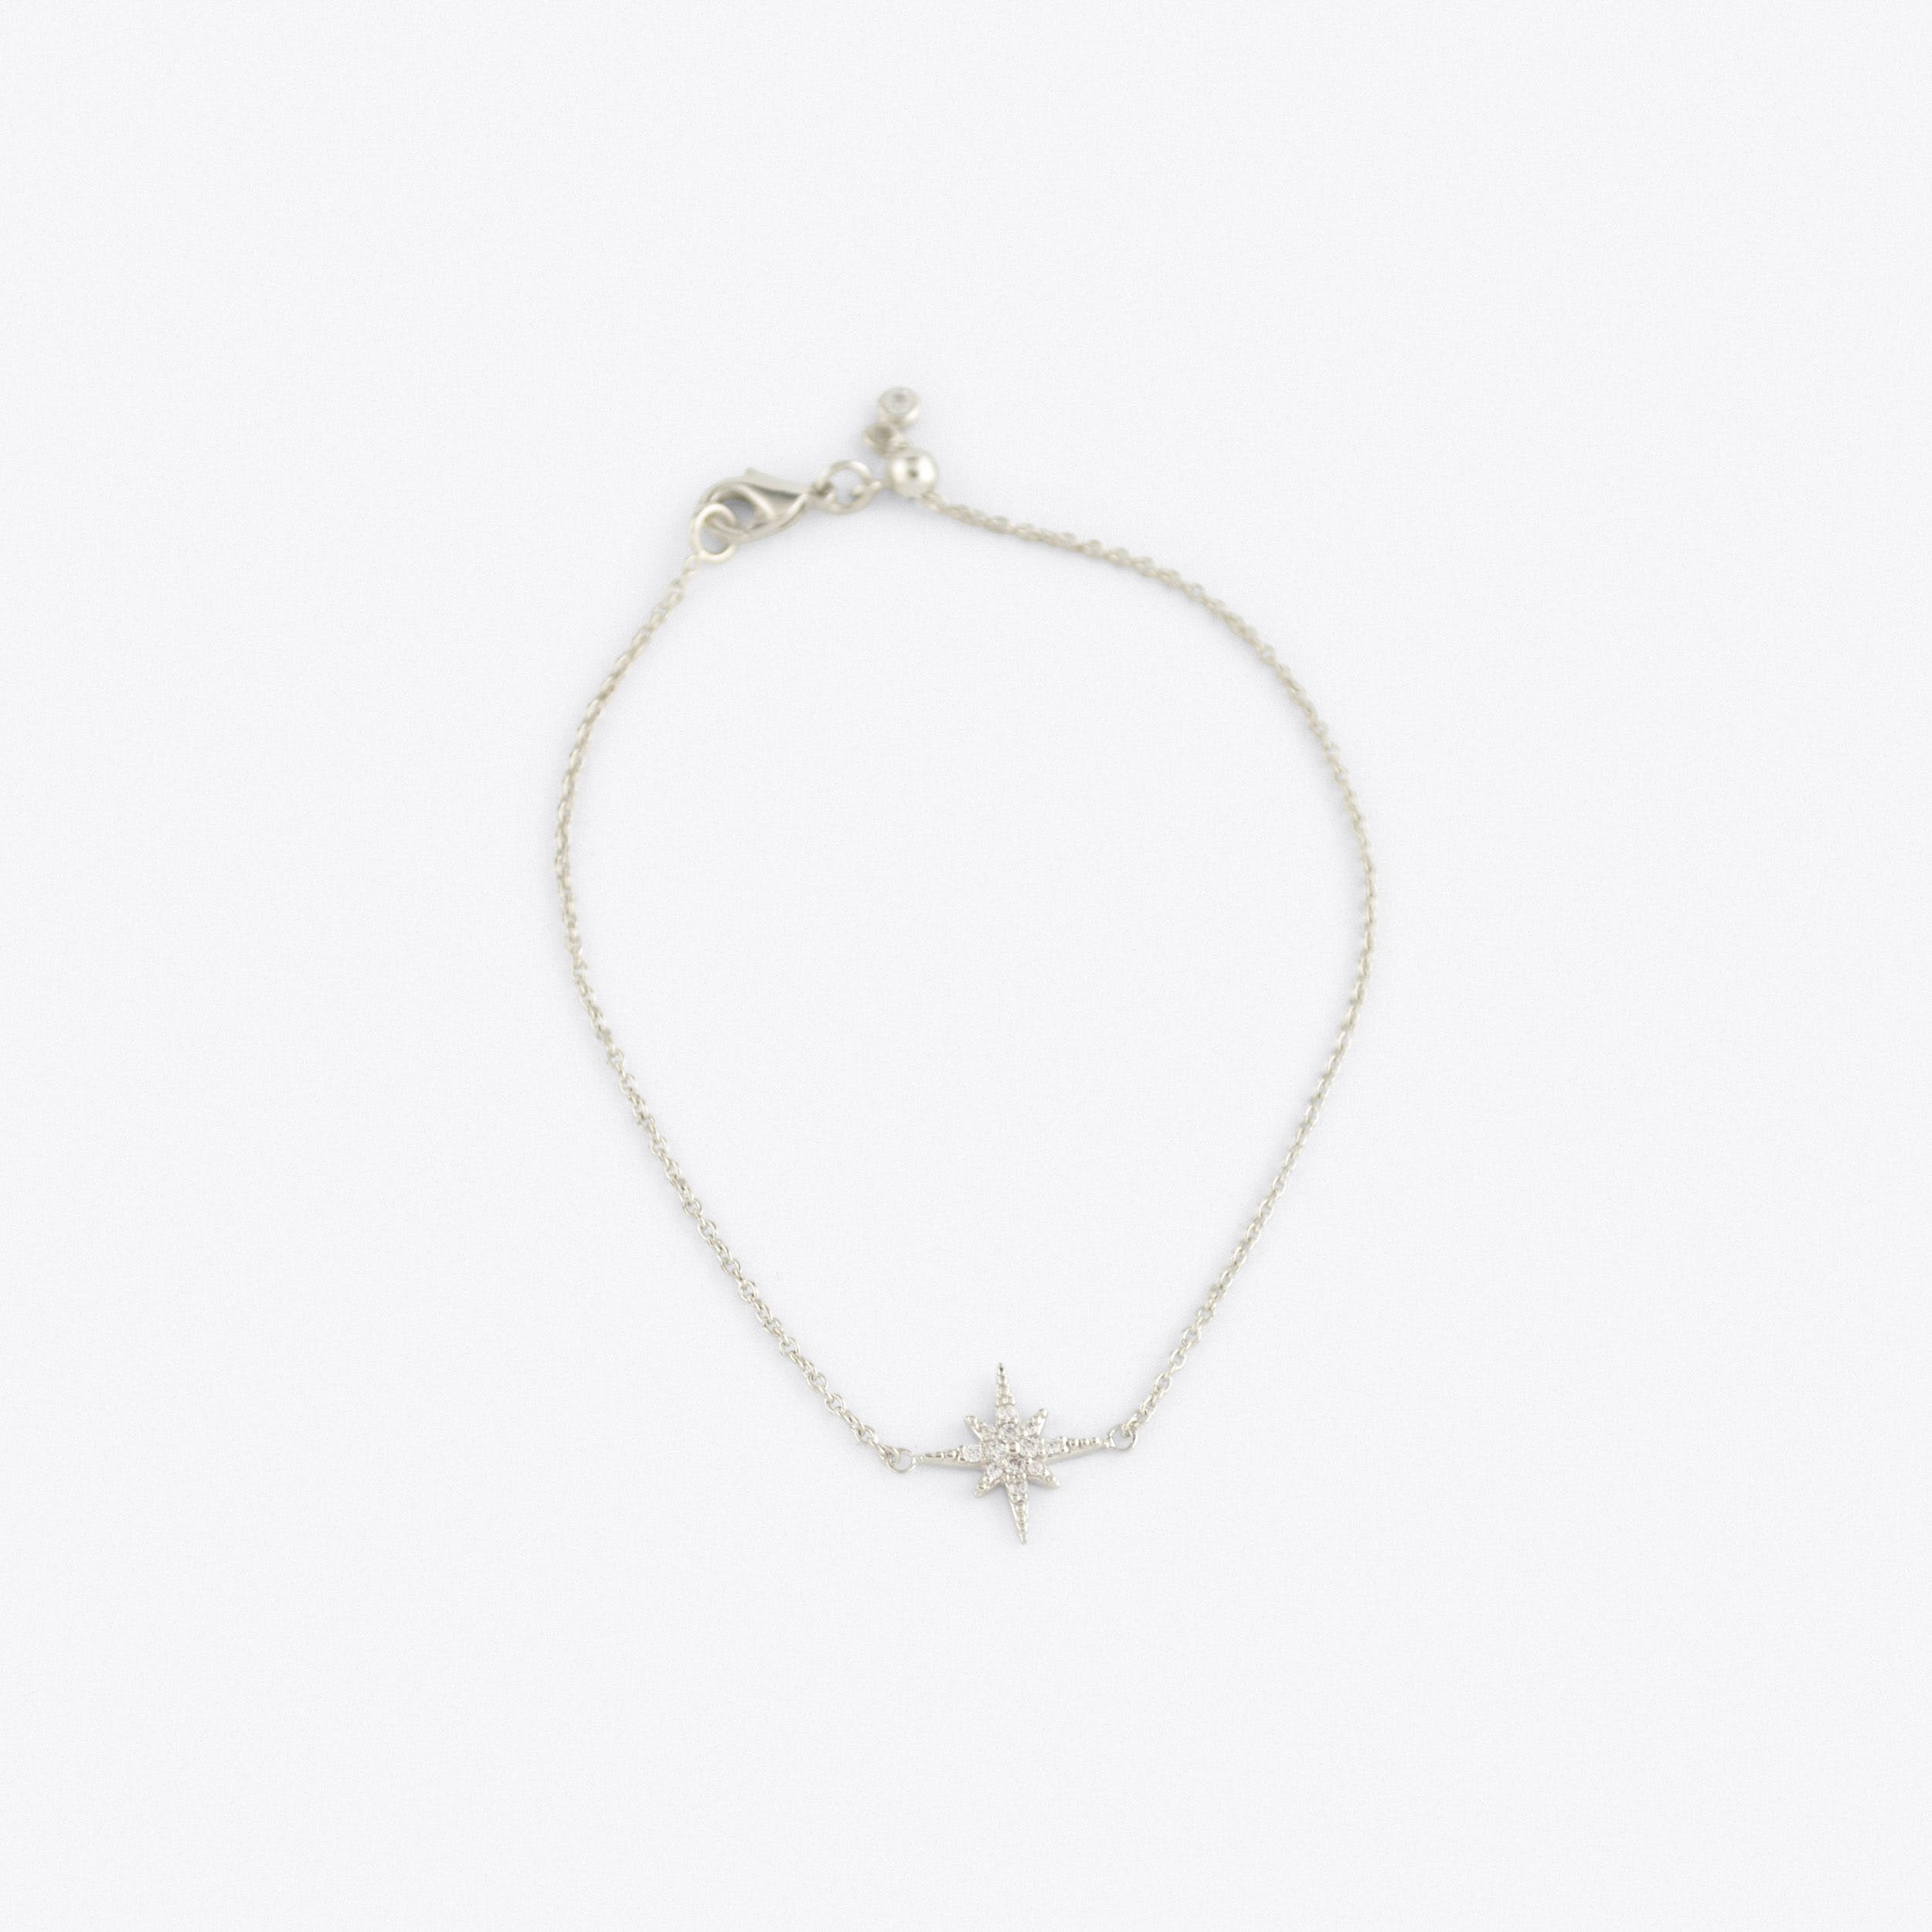 Starburst Bracelet with Slider Clasp in Silver